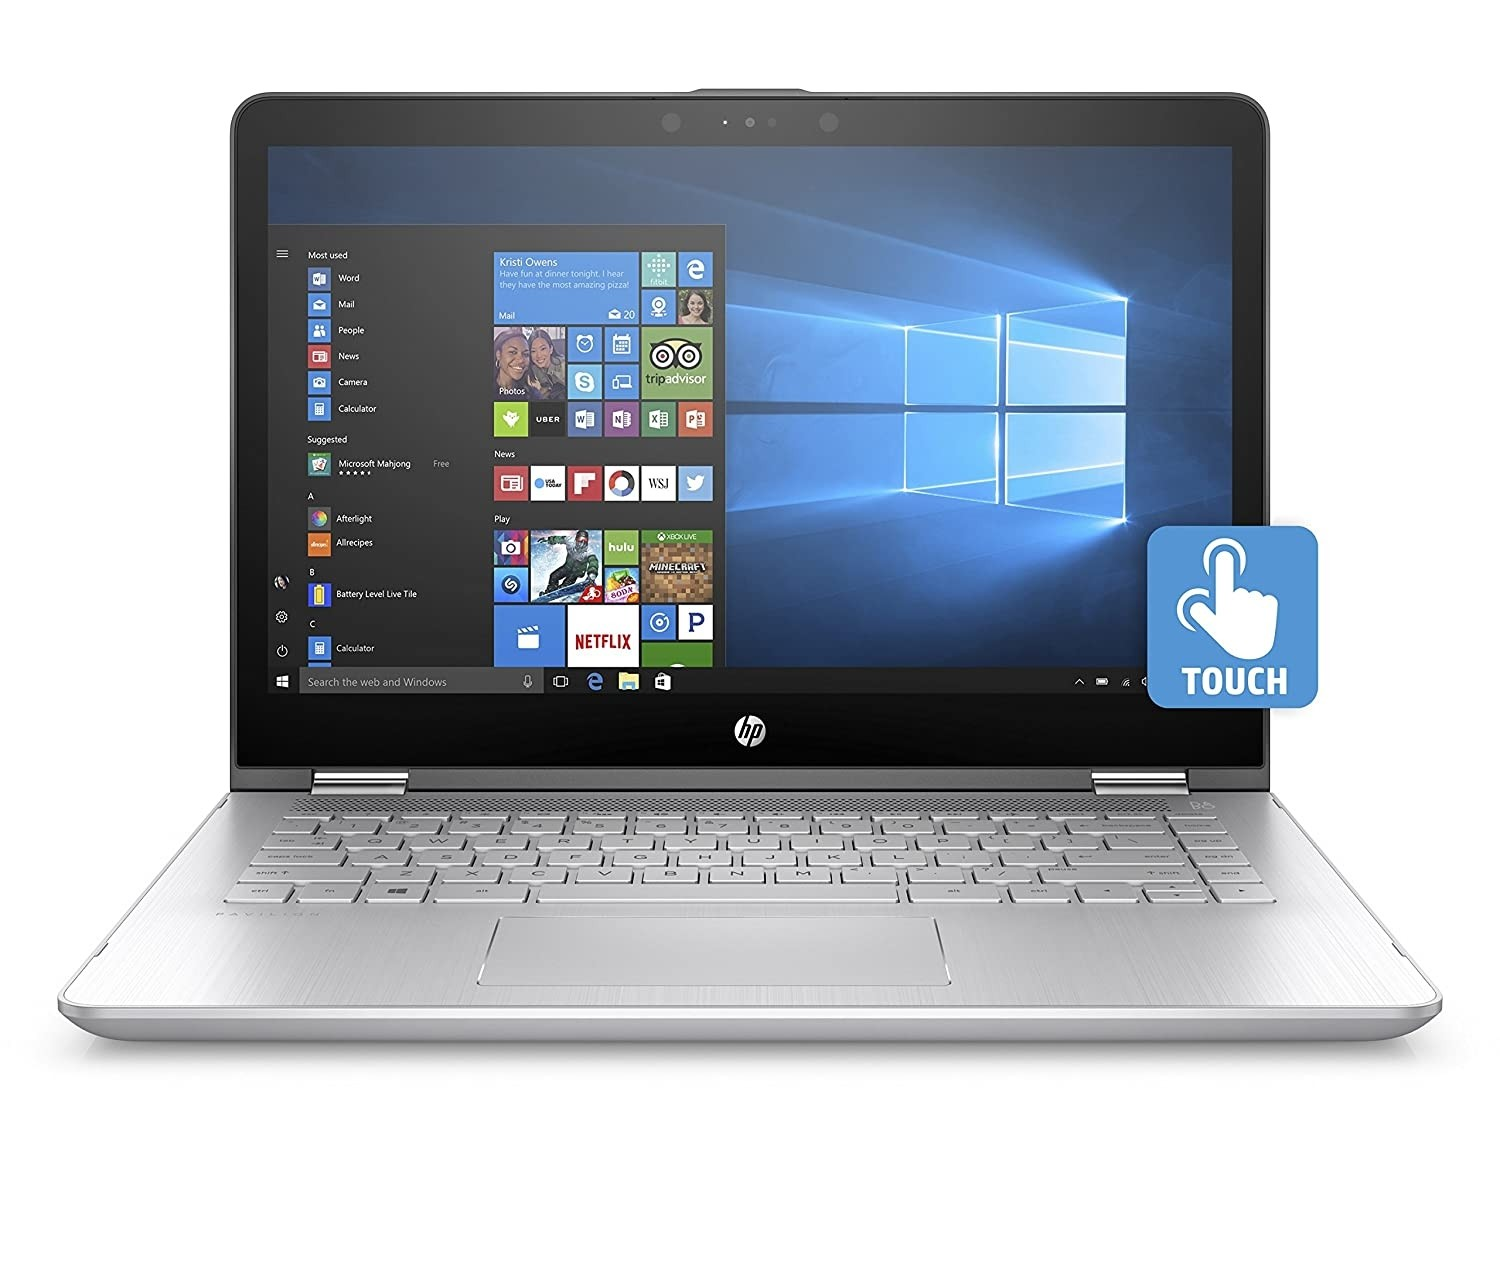 Refurbished laptops & desktops - HP PAVILION X360 CORE I3 7TH GEN 14-INCH TOUCHSCREEN 2-IN-1 THIN AND LIGHT FHD LAPTOP (4GB/1TB HDD/WINDOWS 10/2GB NVIDIA GRAPHIC/NATURAL SILVER)14-BA075TX